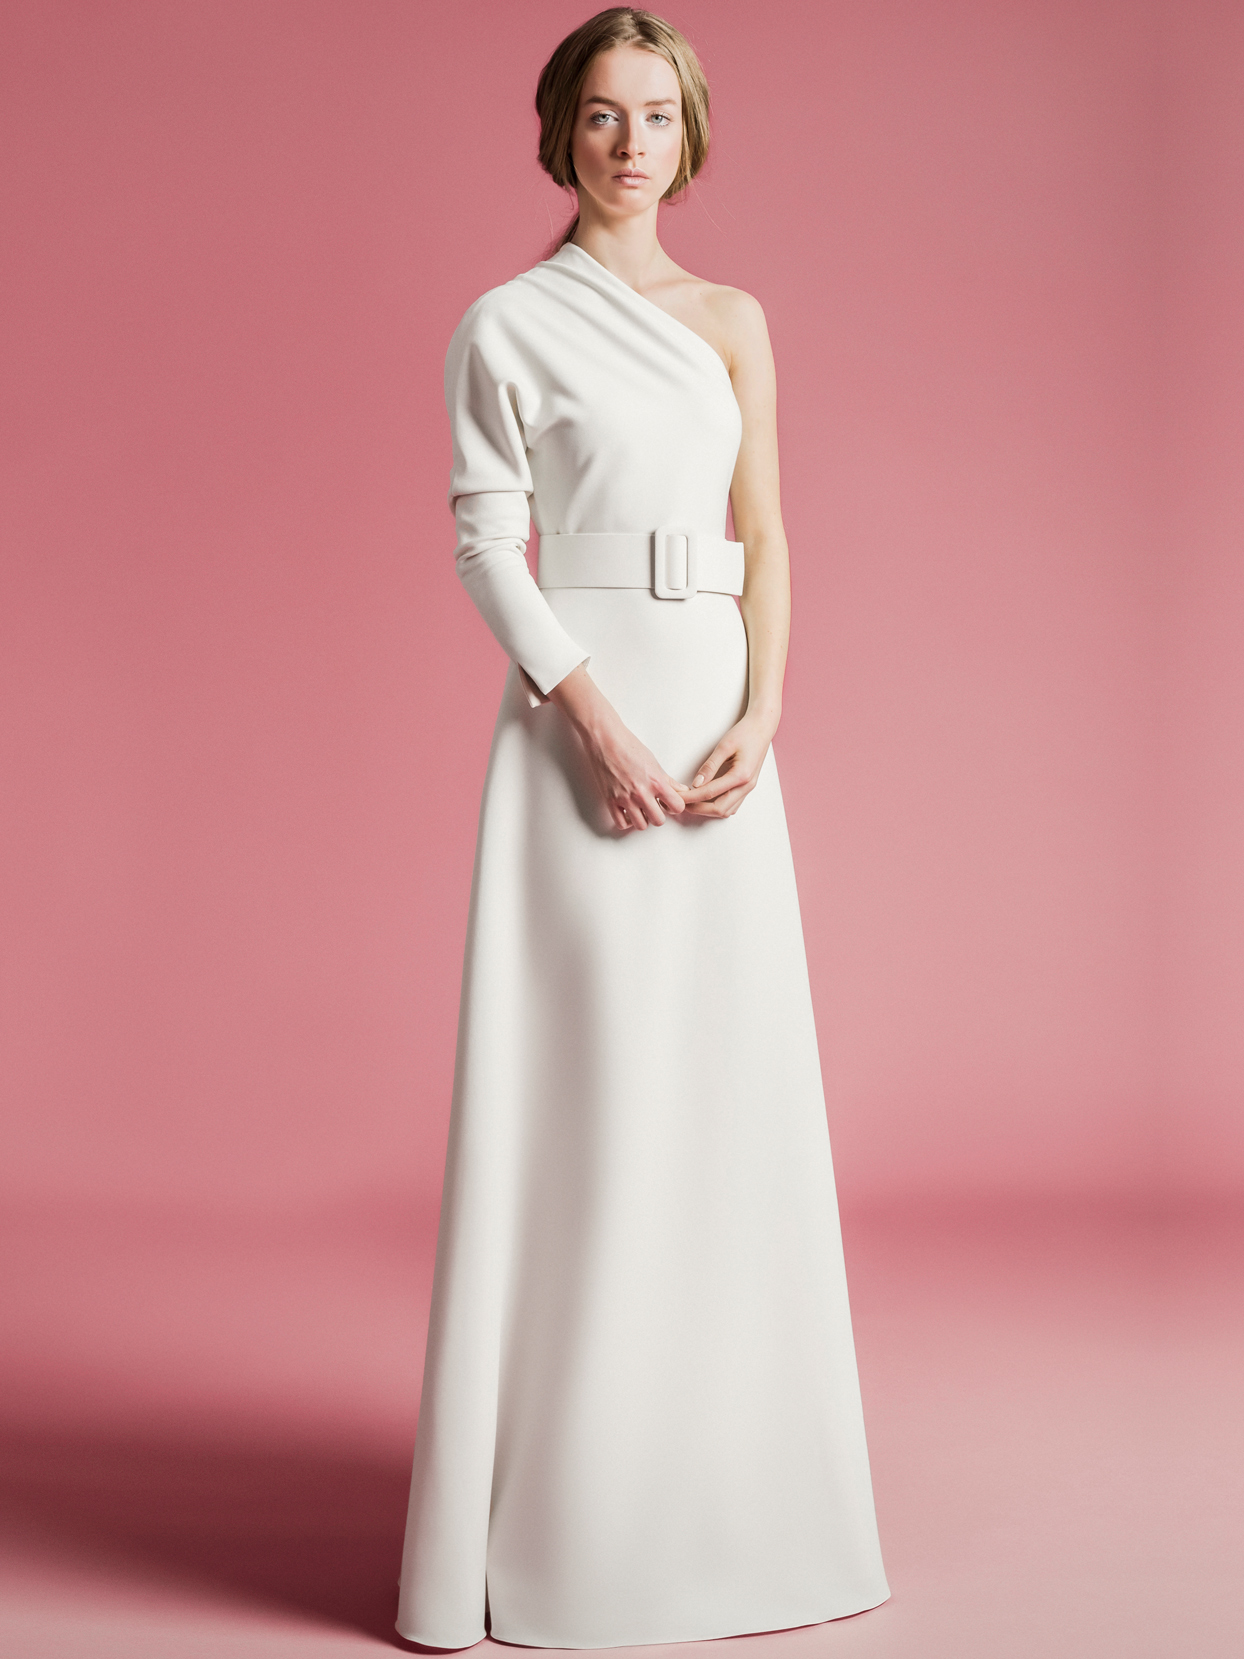 Sophie Et Voilà one shoulder long sleeve belted wedding dress spring 2021